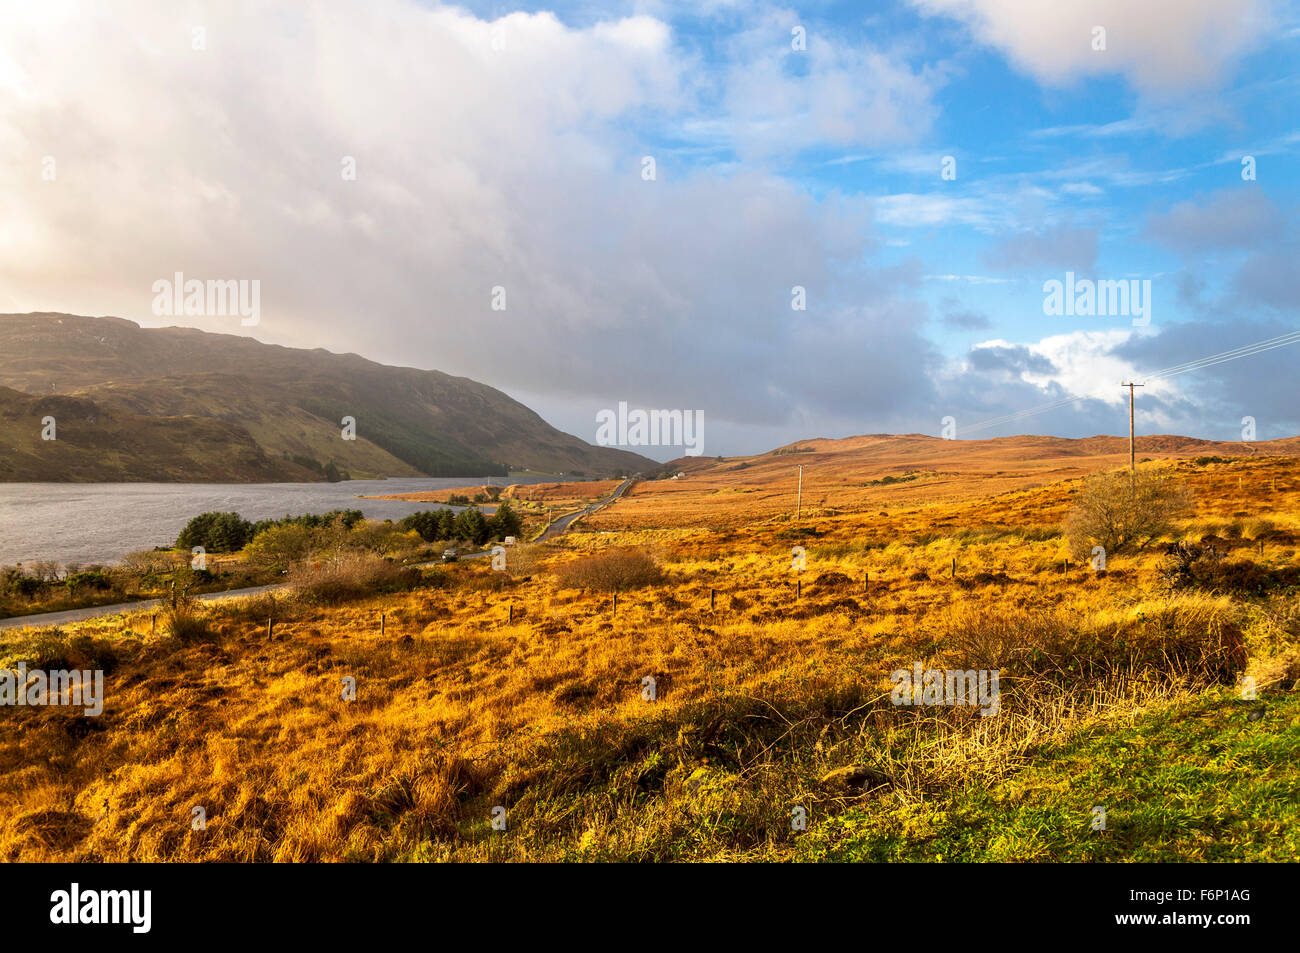 Lough Finn at Fintown, County Donegal, Ireland. The landscape in November. - Stock Image